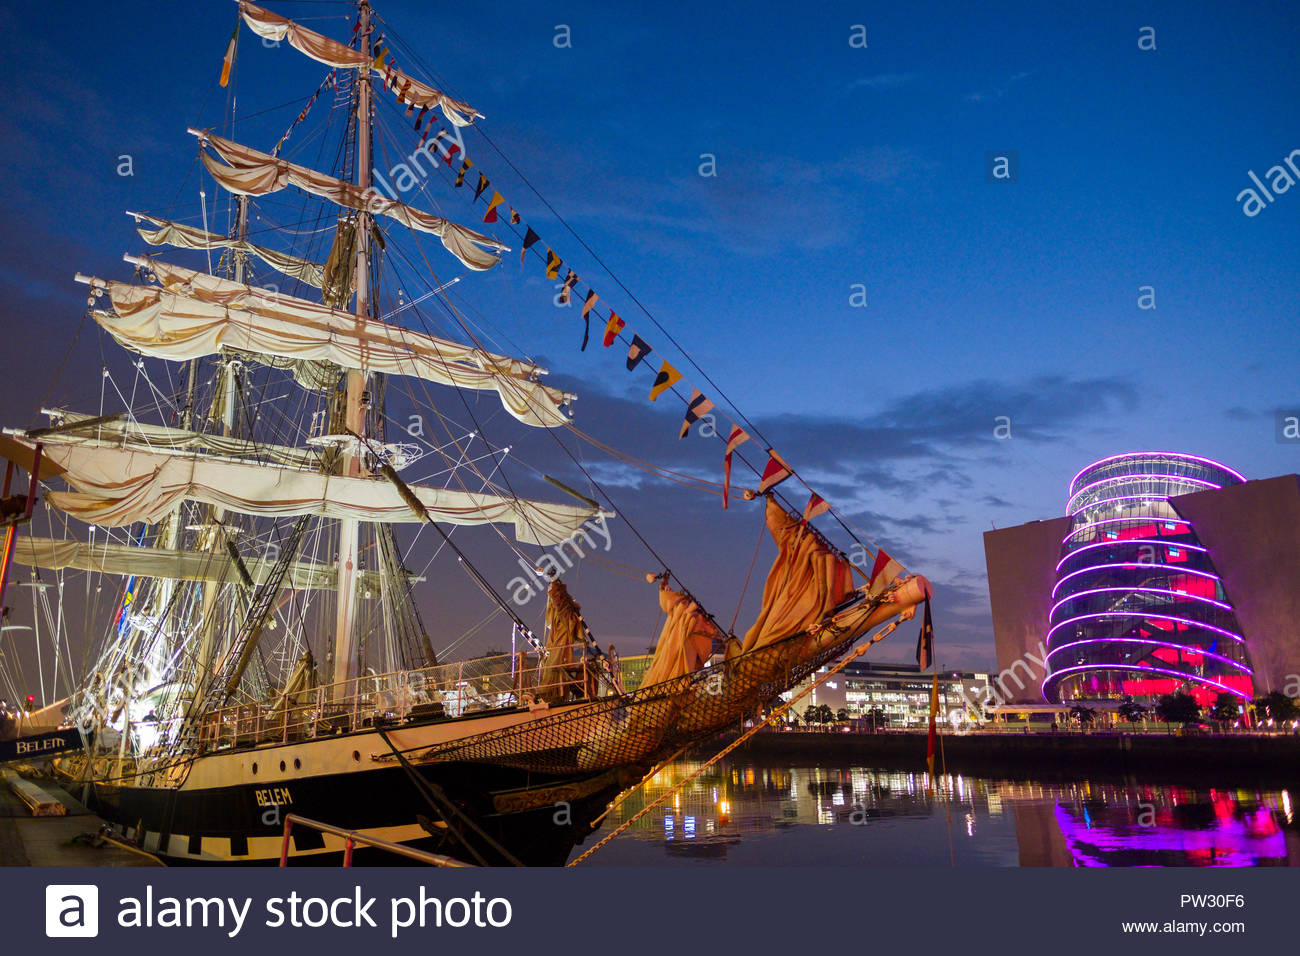 The tall ship Belem docked along the River Liffey at night during the 2018 Tall Ships Regatta, Docklands, Dublin, Leinster, Ireland - Stock Image